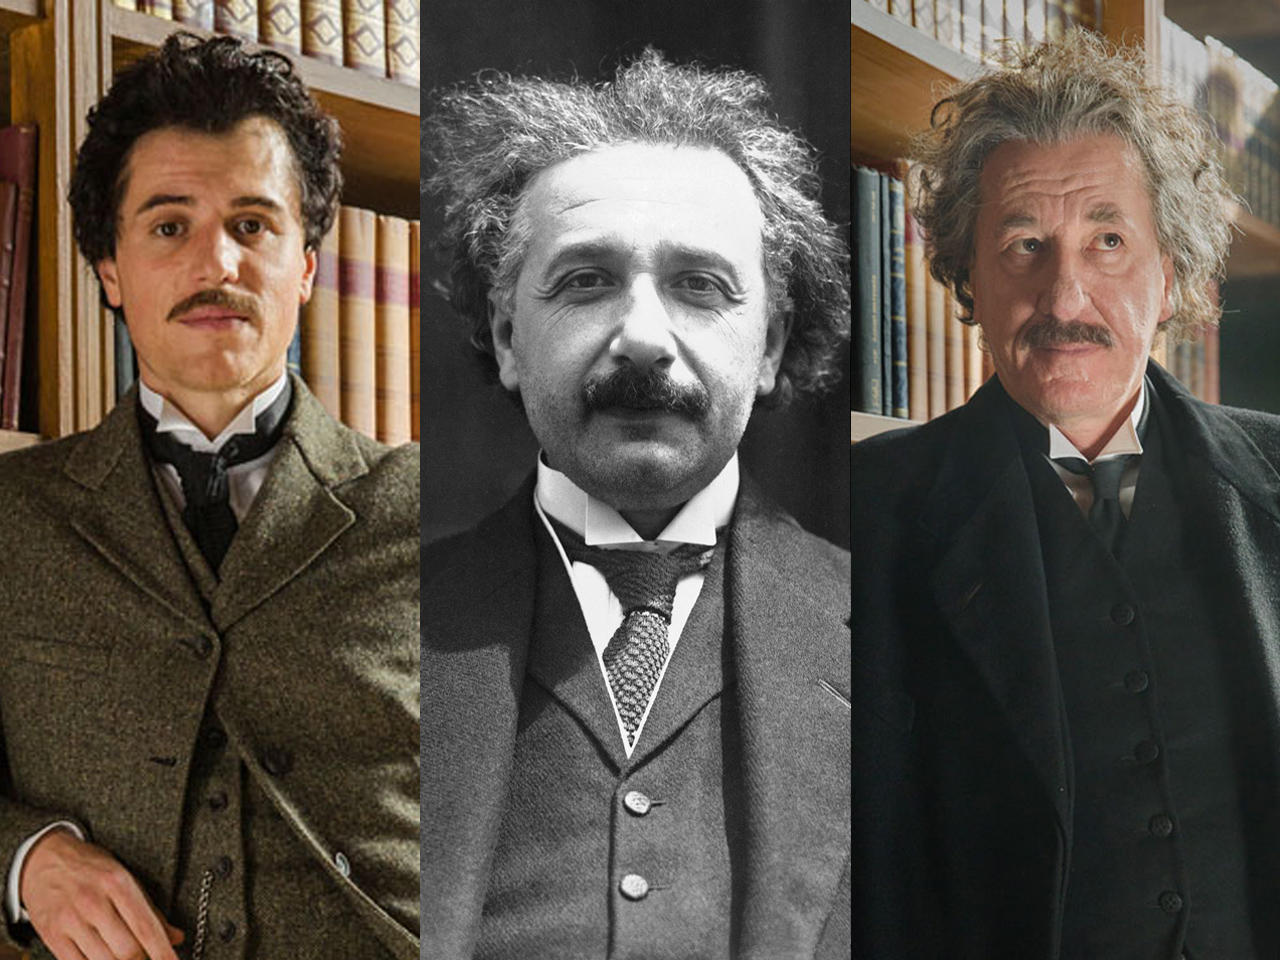 cbsnews.com||http://www.cbsnews.com/news/the-real-einstein-genius/